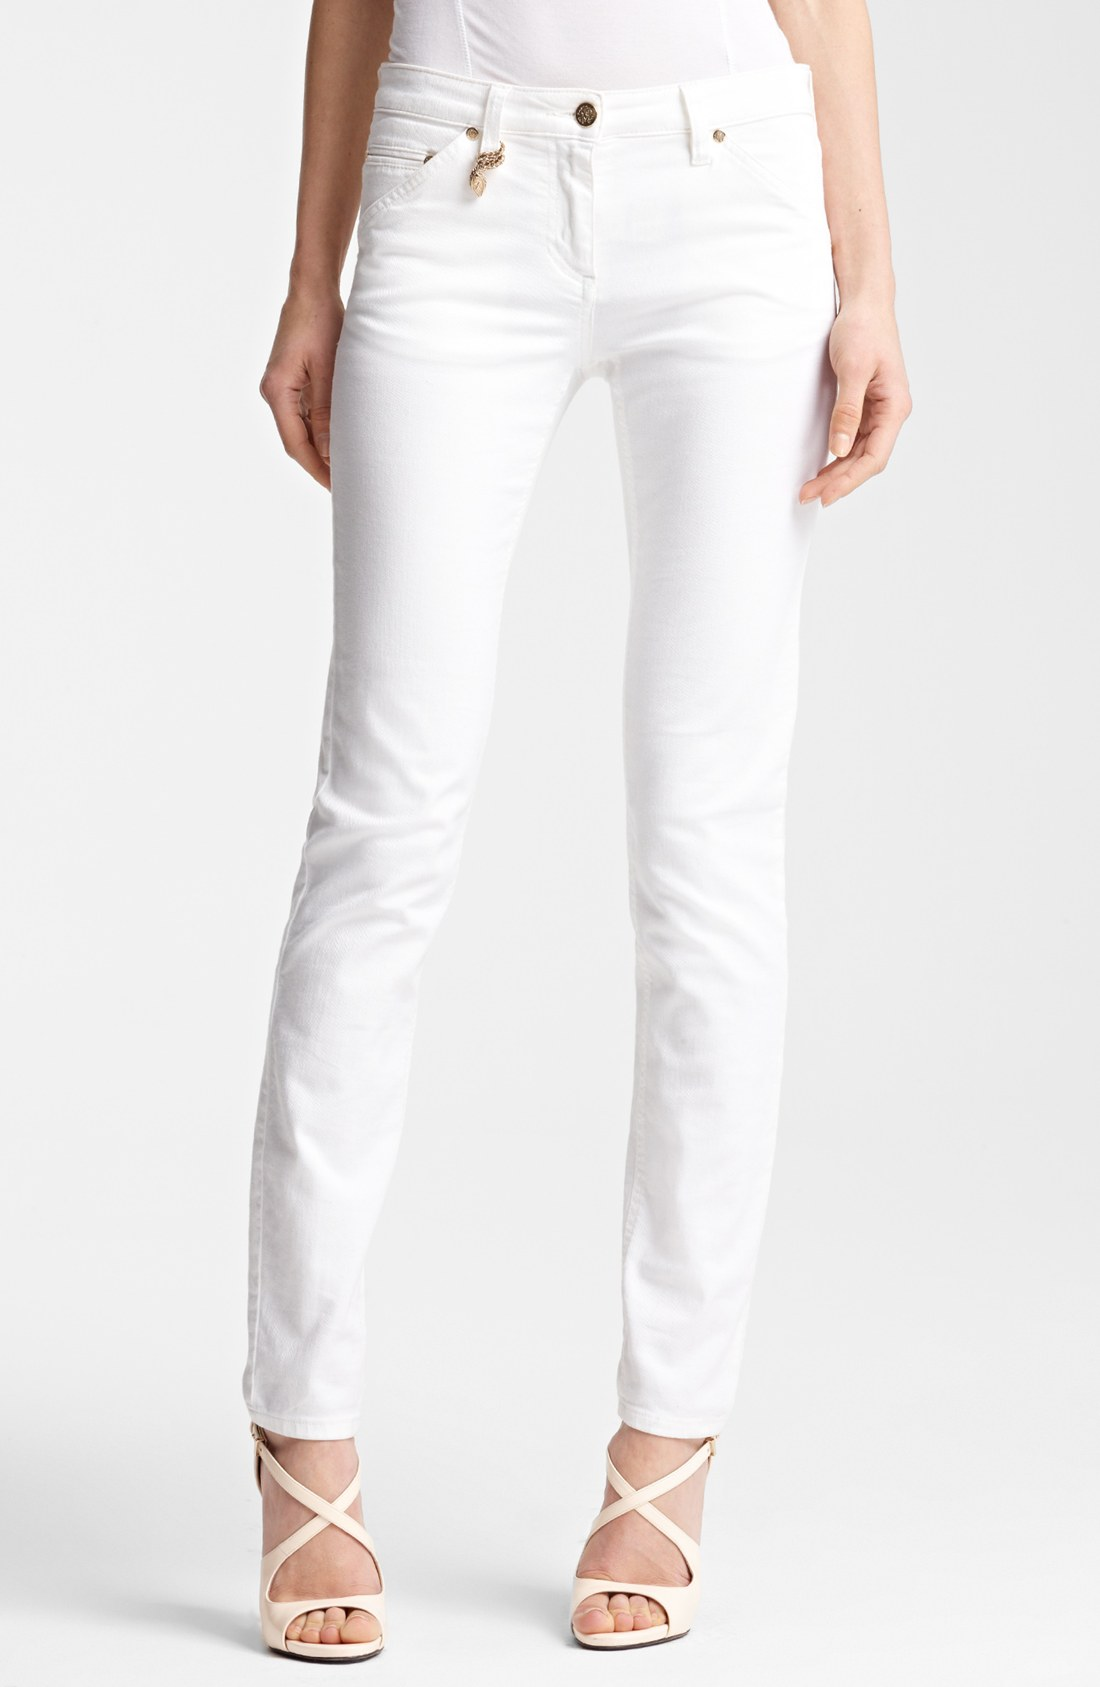 Liverpool Jeans Company Women's Moto-Zip Jean Jacket - White Stretch Denim. Sold by Universal Direct Brands. $ White Mark Plus Size Super Stretch Capri Denim. Miss Halladay Women White Stretch Denim Boyfriend Five Pocket Jean Ankle Length. Sold by Vibes Base Enterprises Inc.